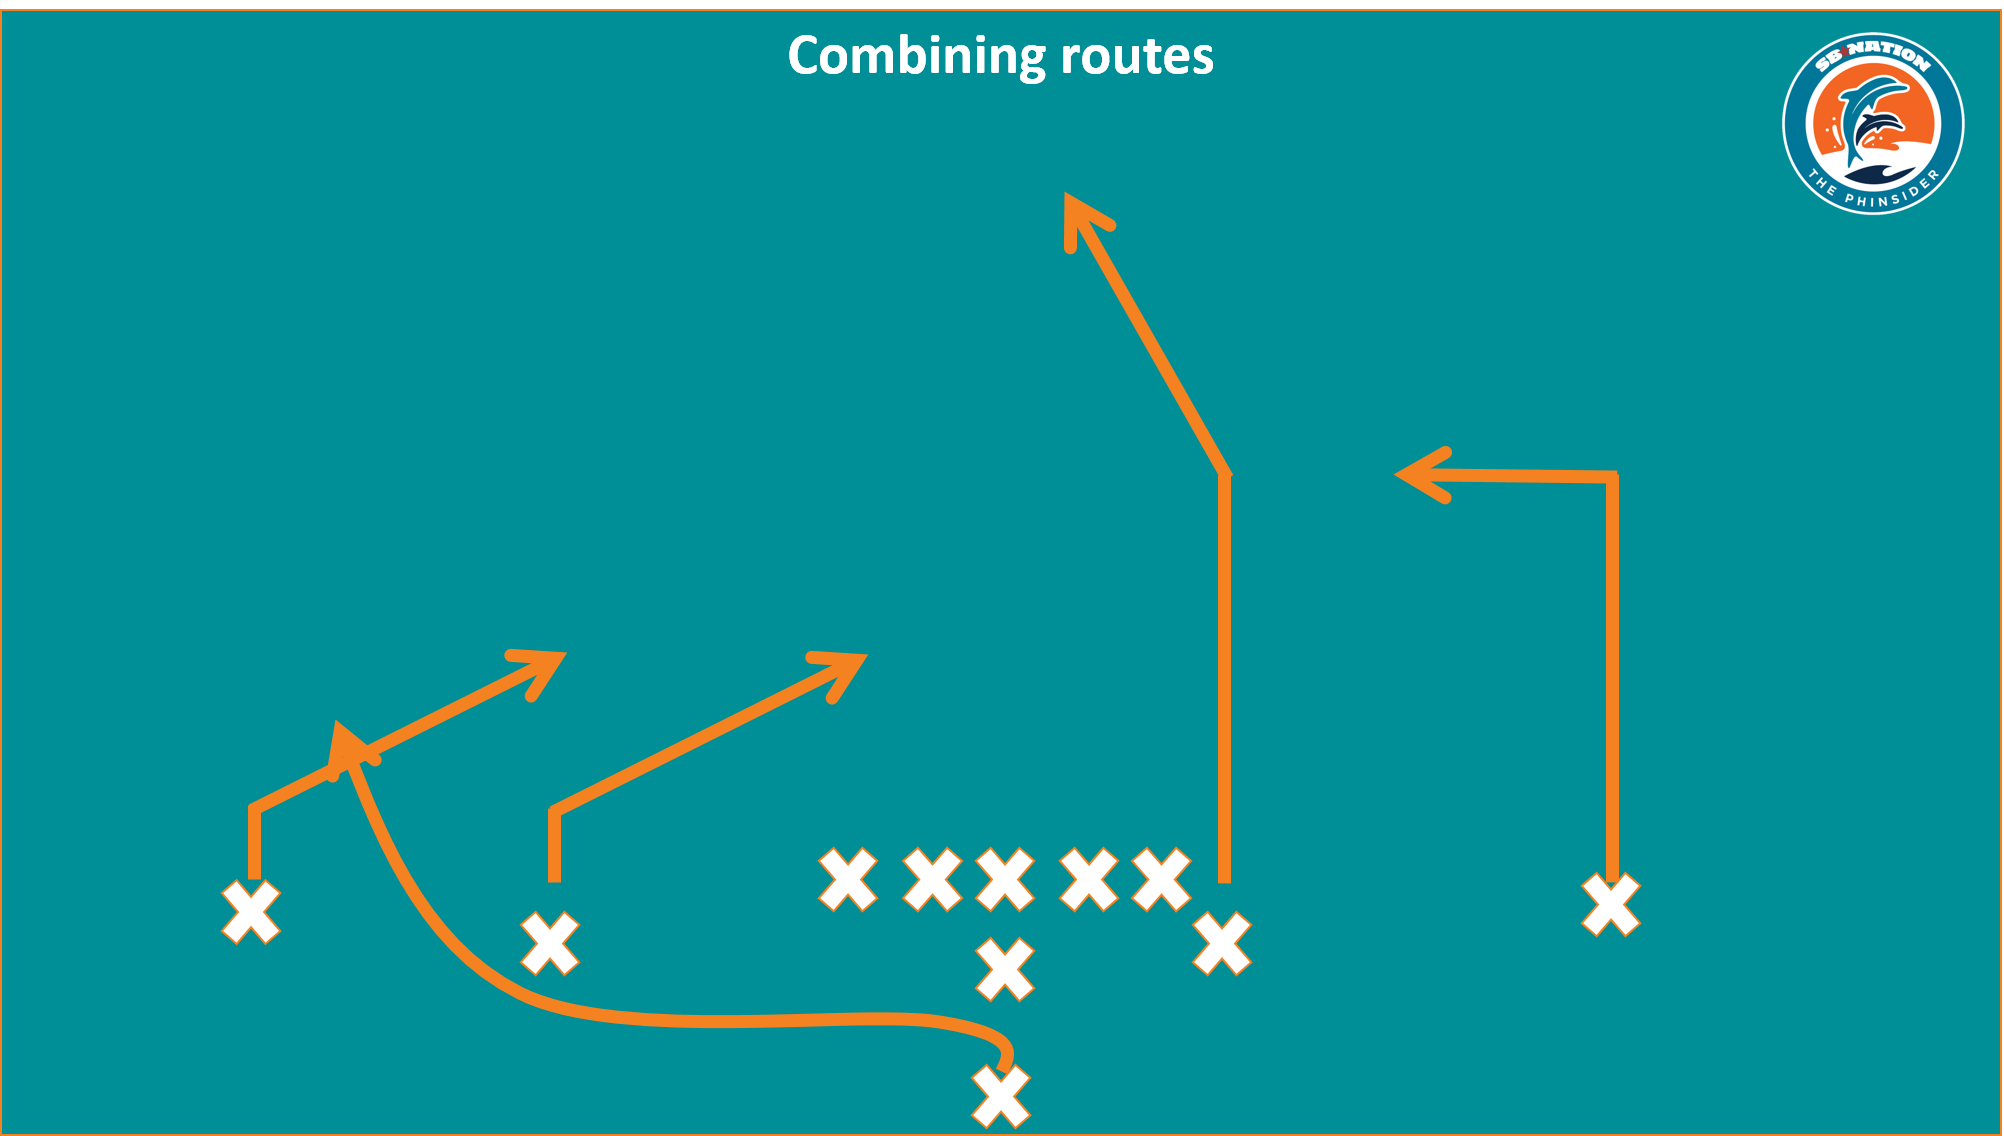 Football 101 wide receiver route tree the phinsider this type of route combination should provide the quarterback with two quick options separated by some depth based on their starting positions on the line pooptronica